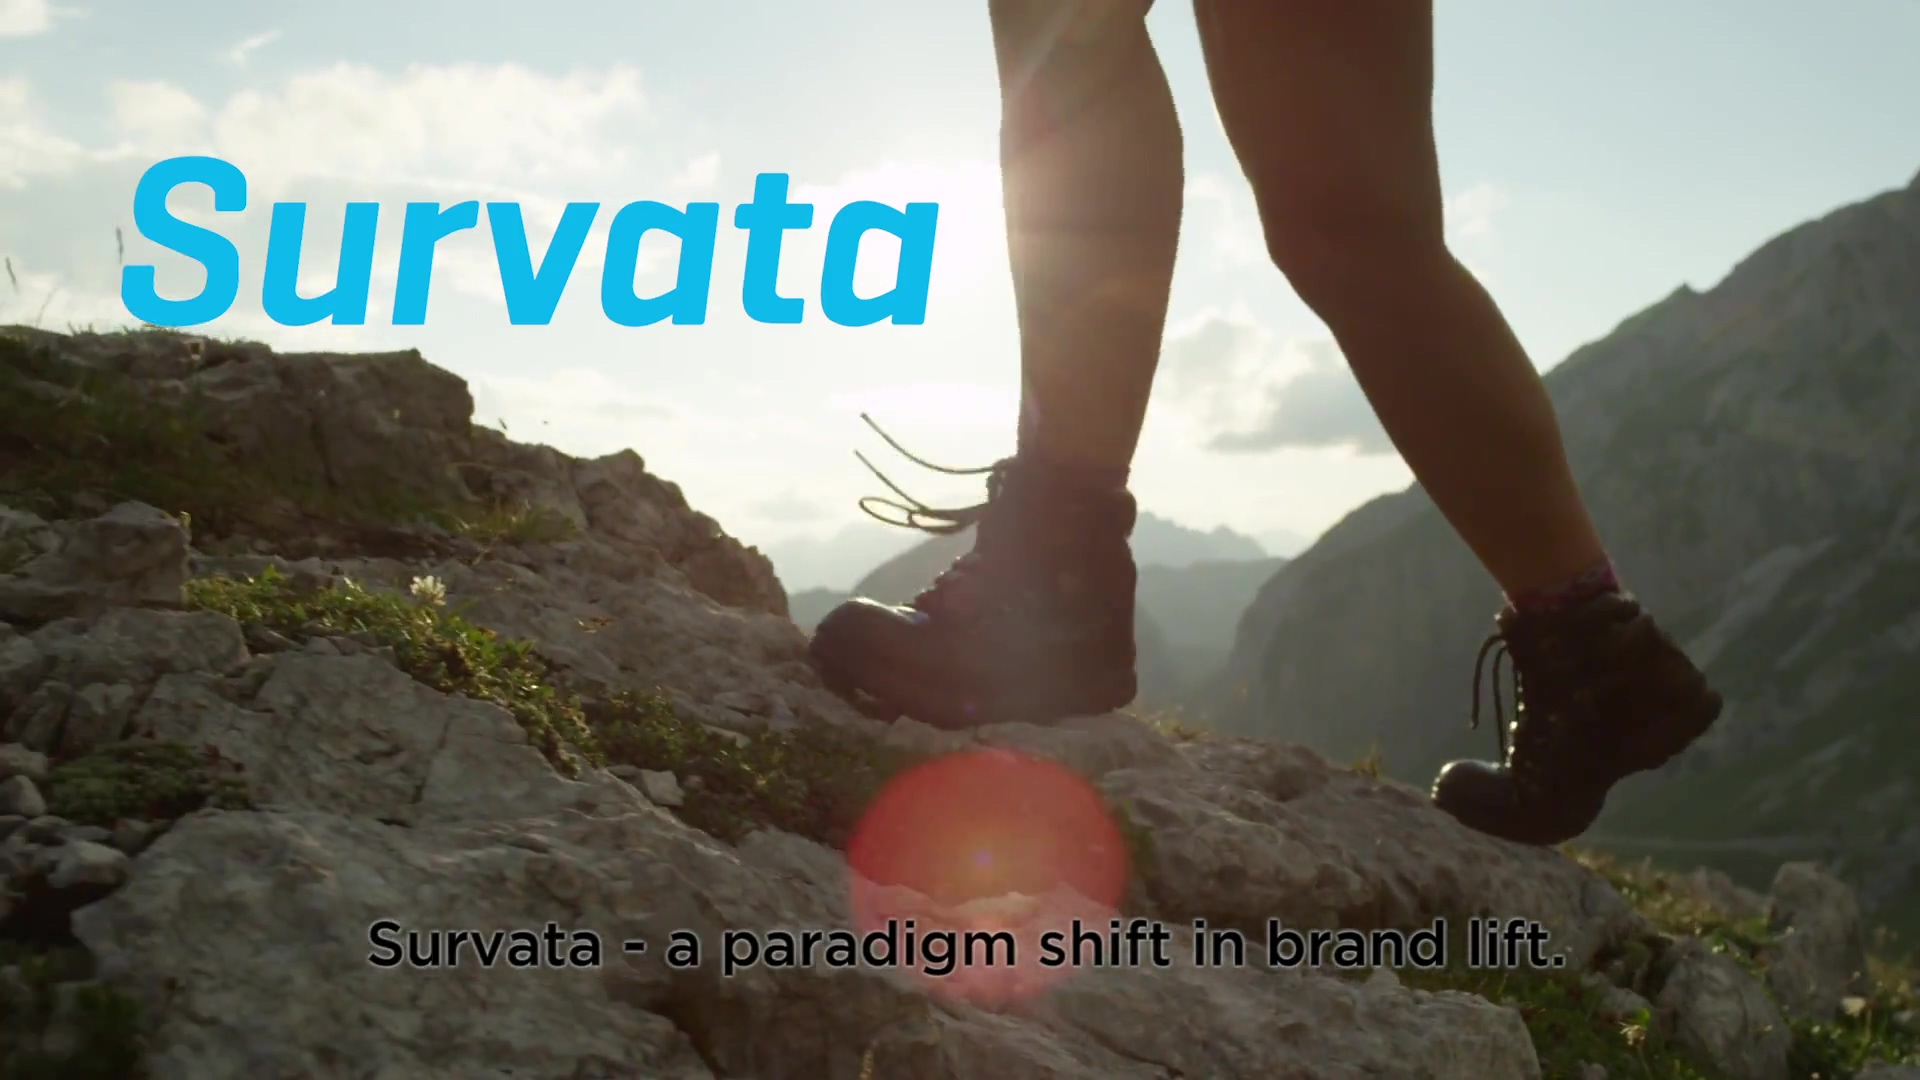 Survata-PlatformLaunch (1)